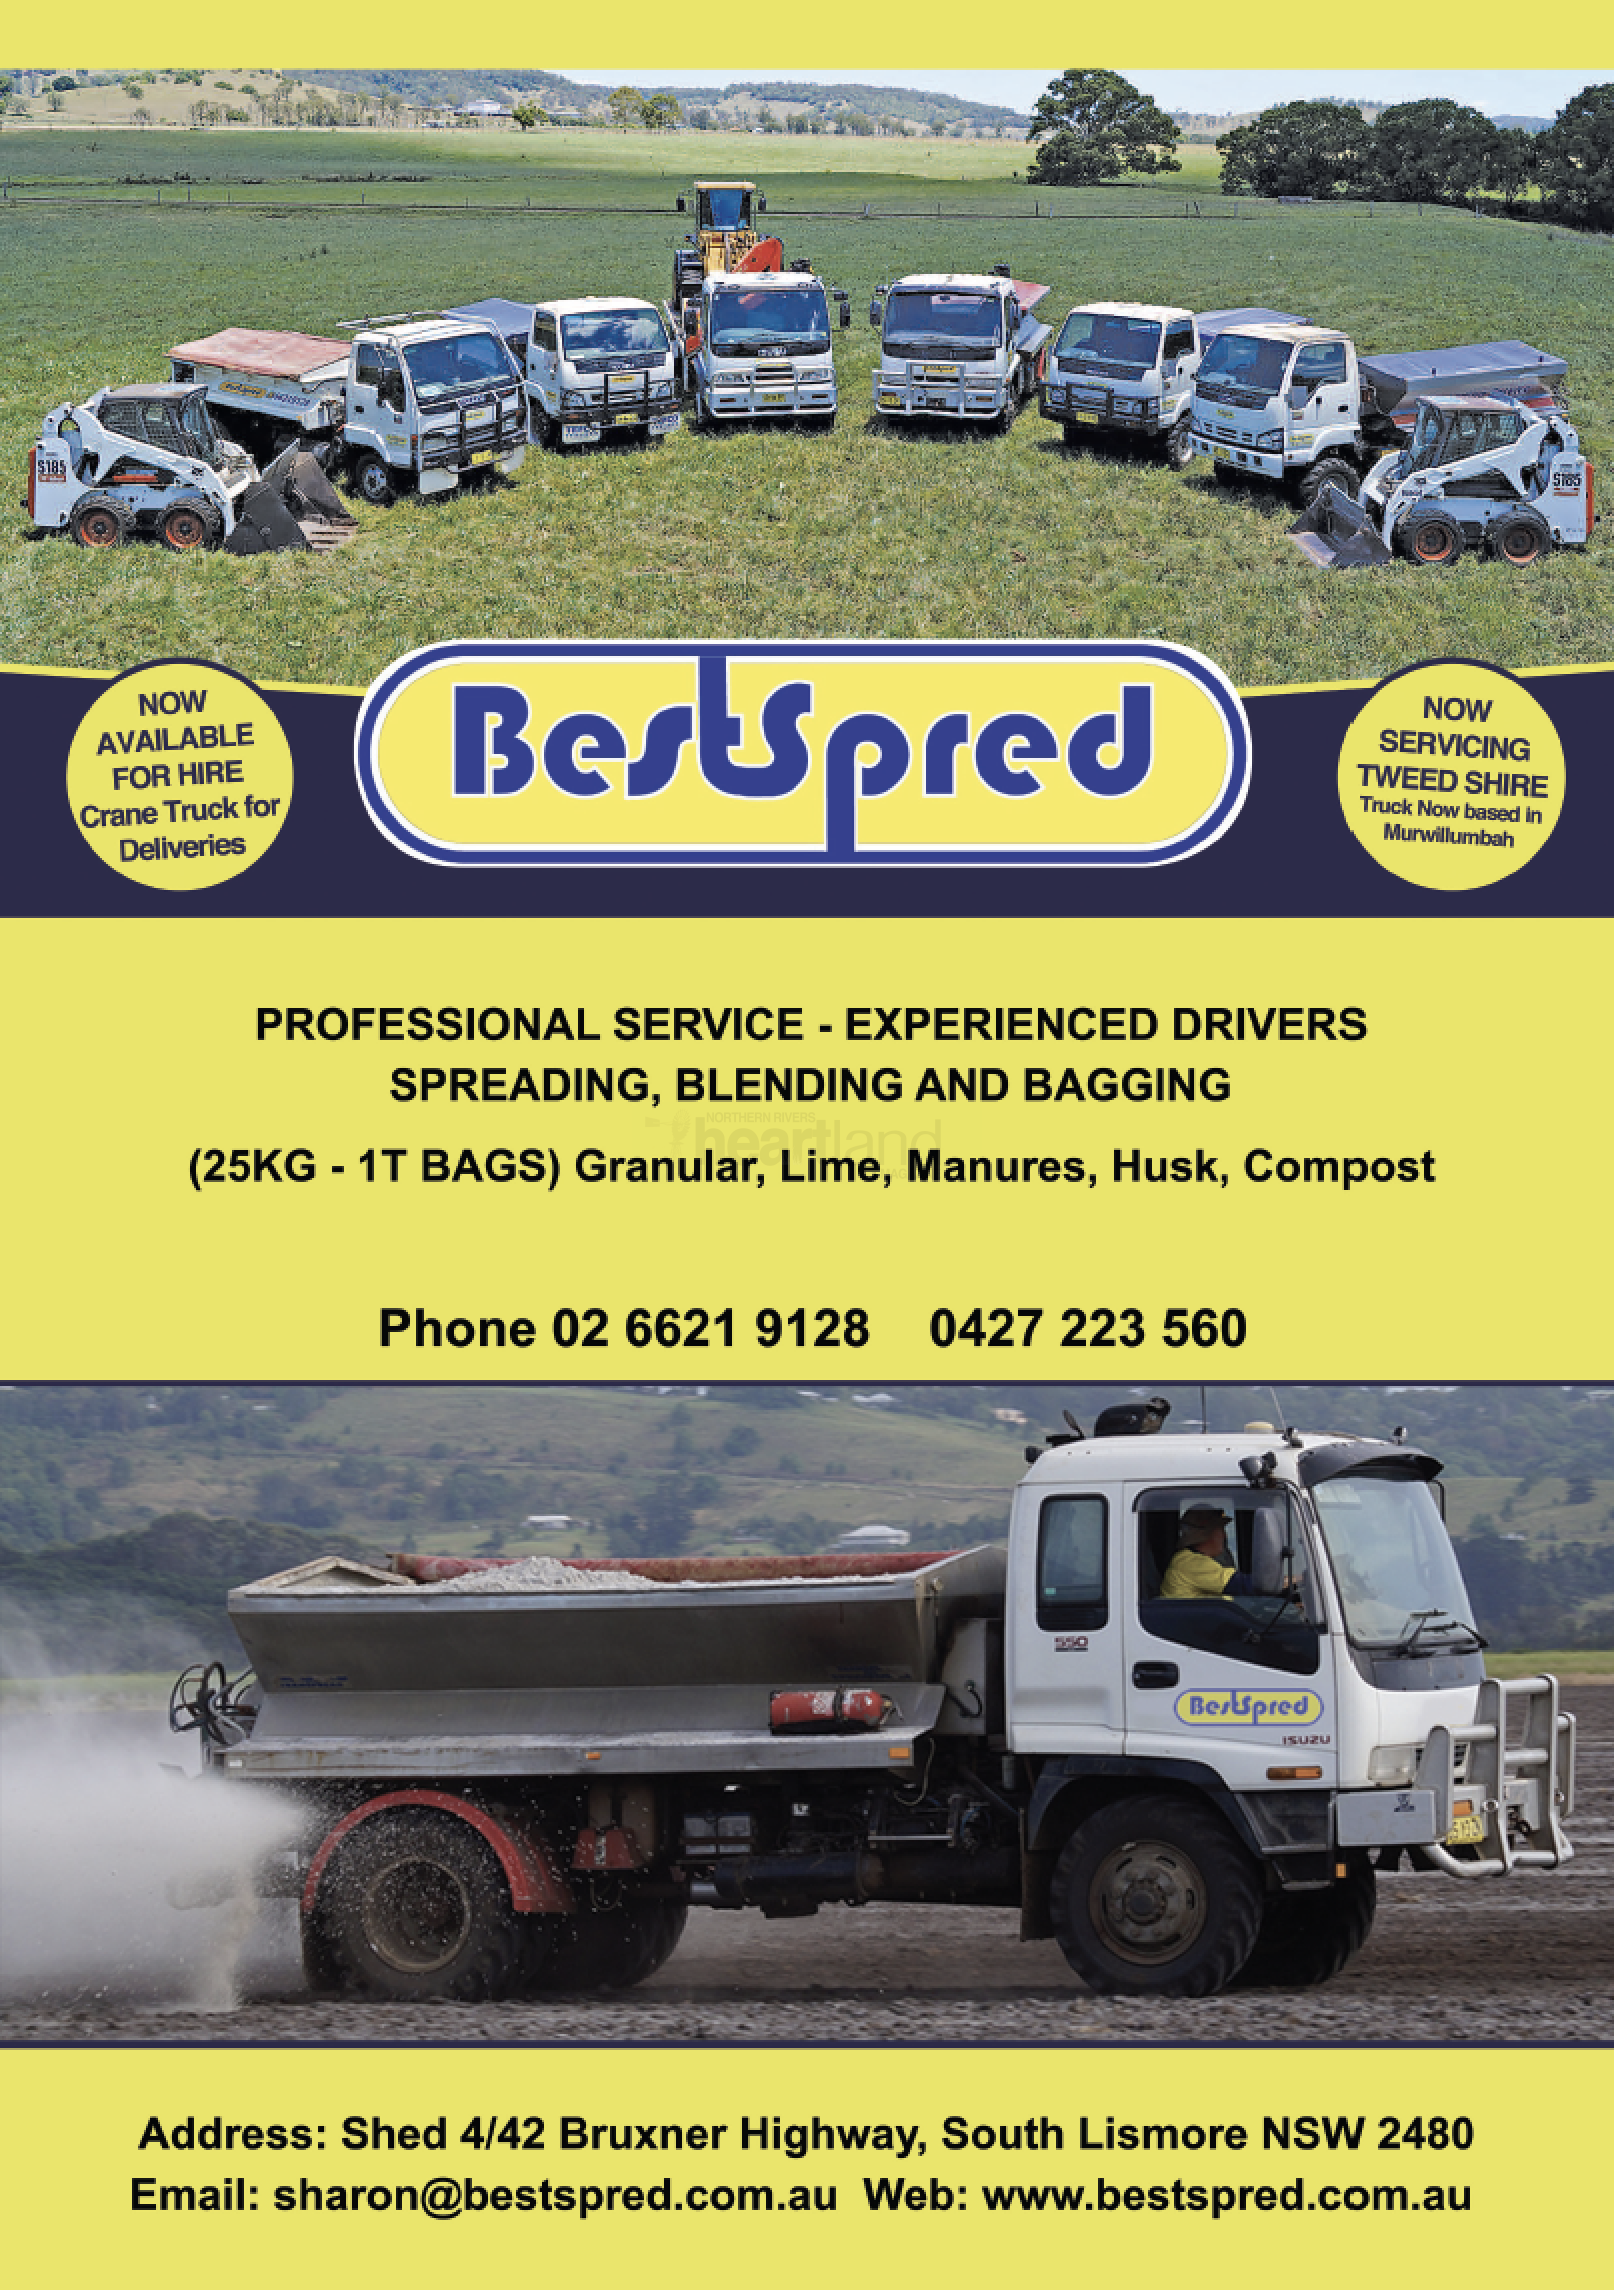 Bestspred, Heartland Magazine NSW